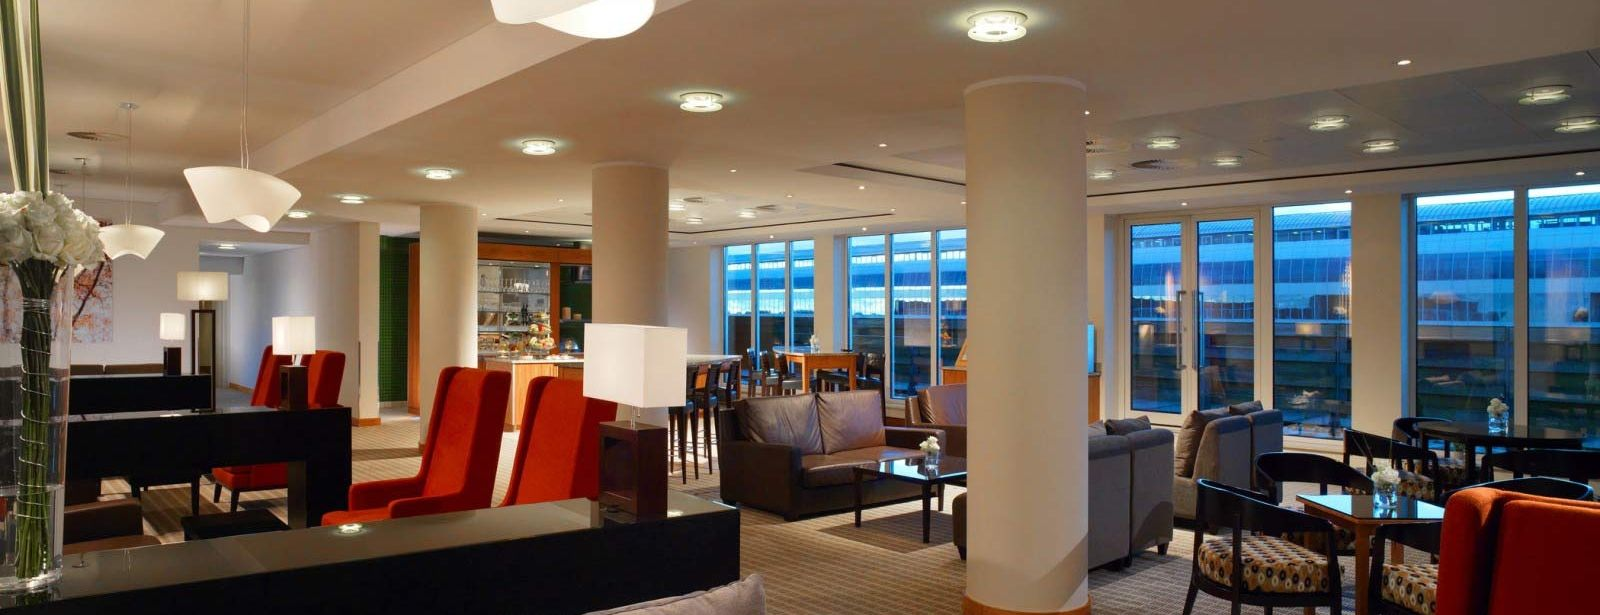 Club Zimmer im Sheraton Frankfurt Airport Hotel & Conference Center